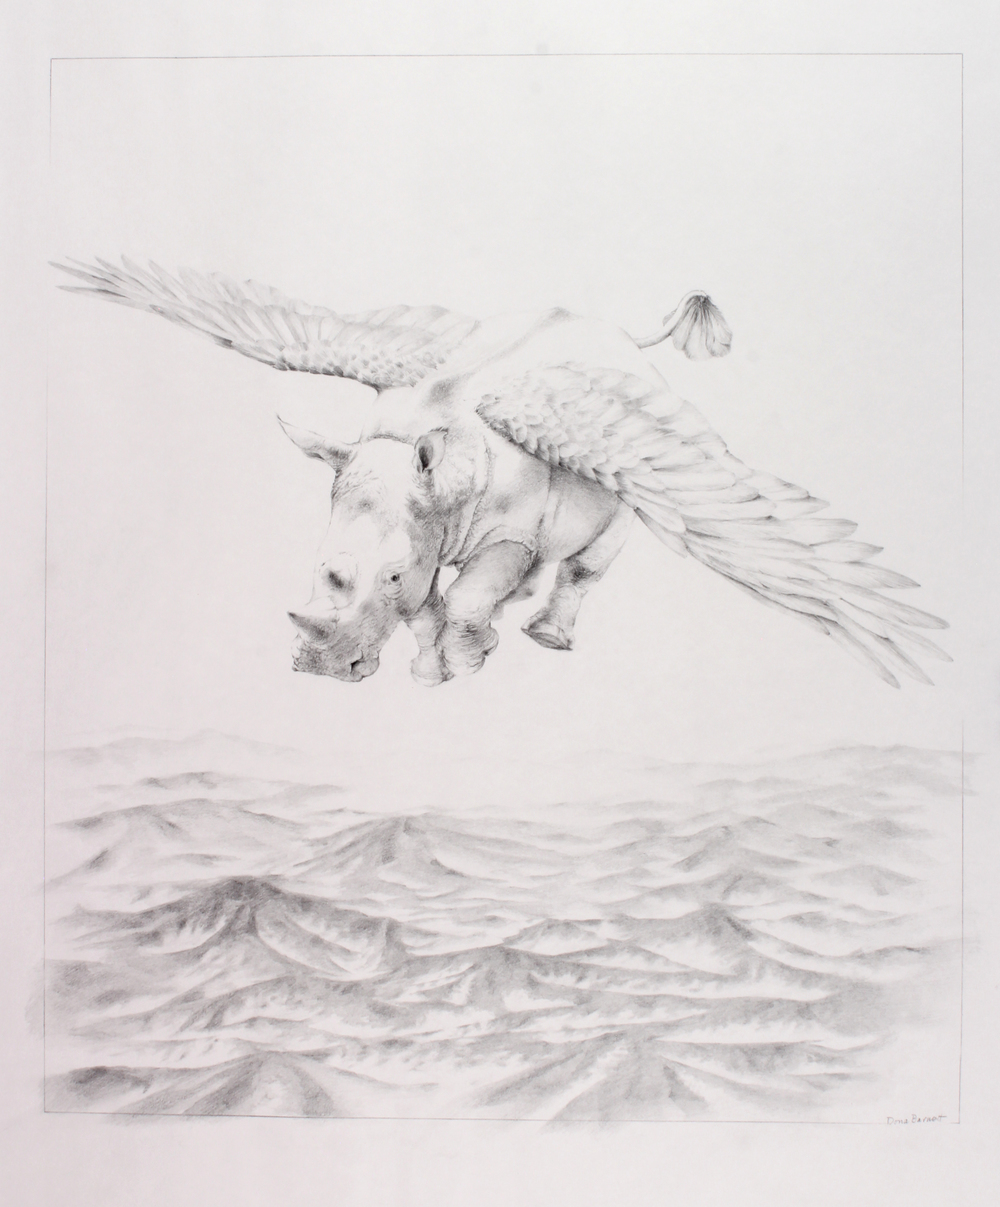 Dona Barnett – And Then I Dreamt That I Was Flying Over The Mountains With Mist Rising - $850